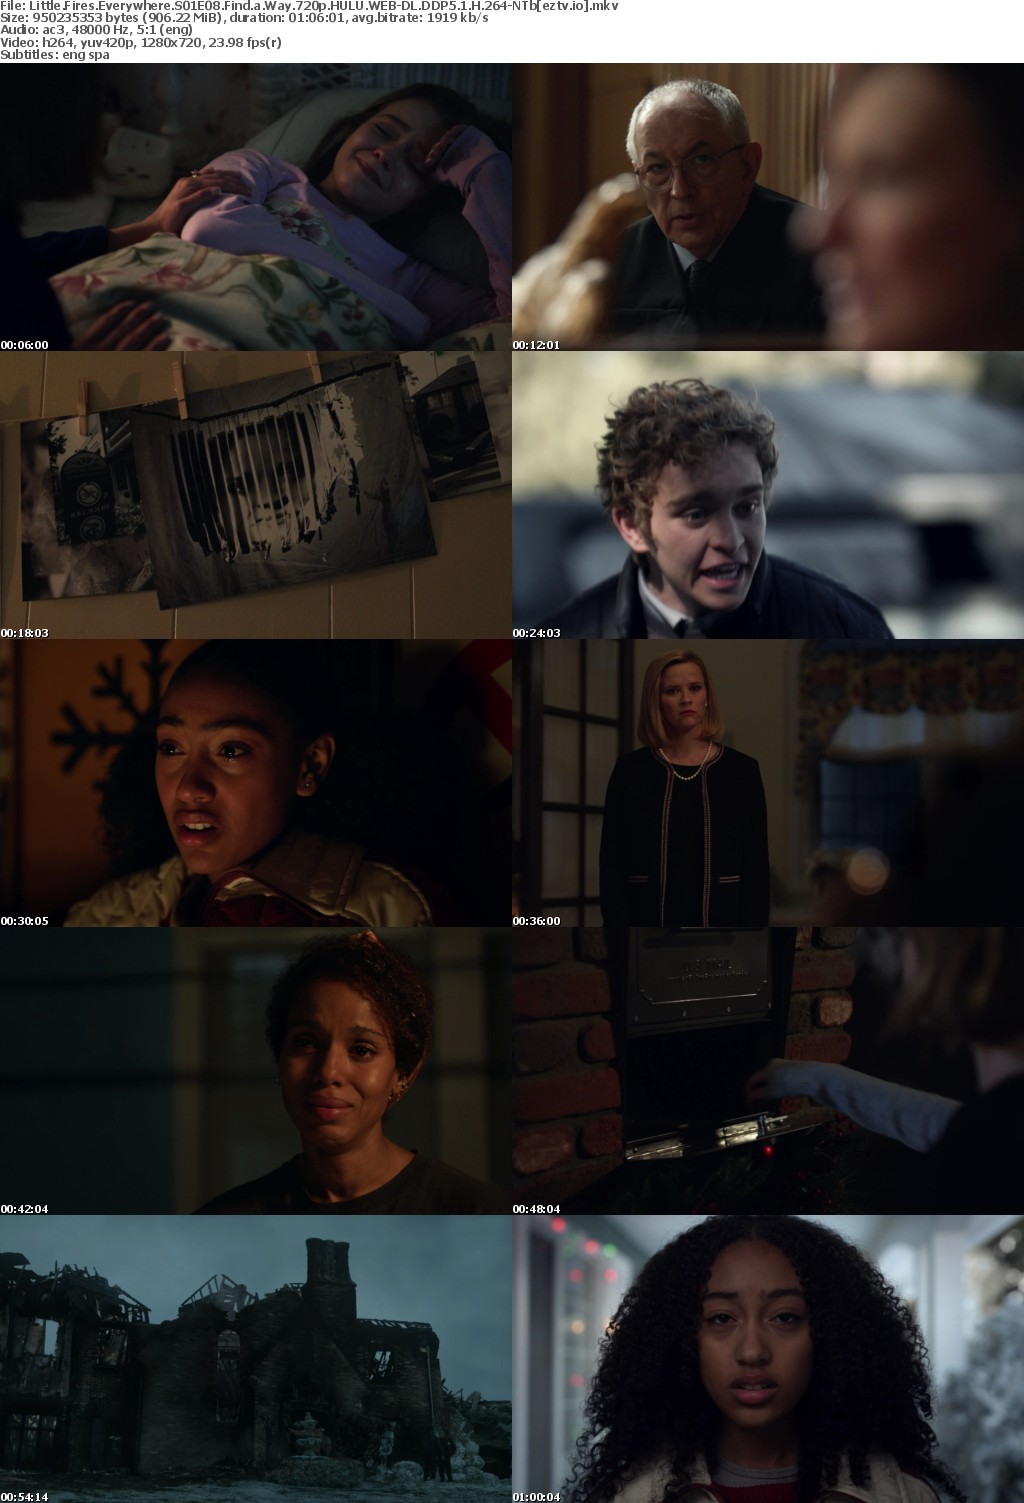 Little Fires Everywhere S01E08 Find a Way 720p HULU WEB-DL DDP5 1 H 264-NTb